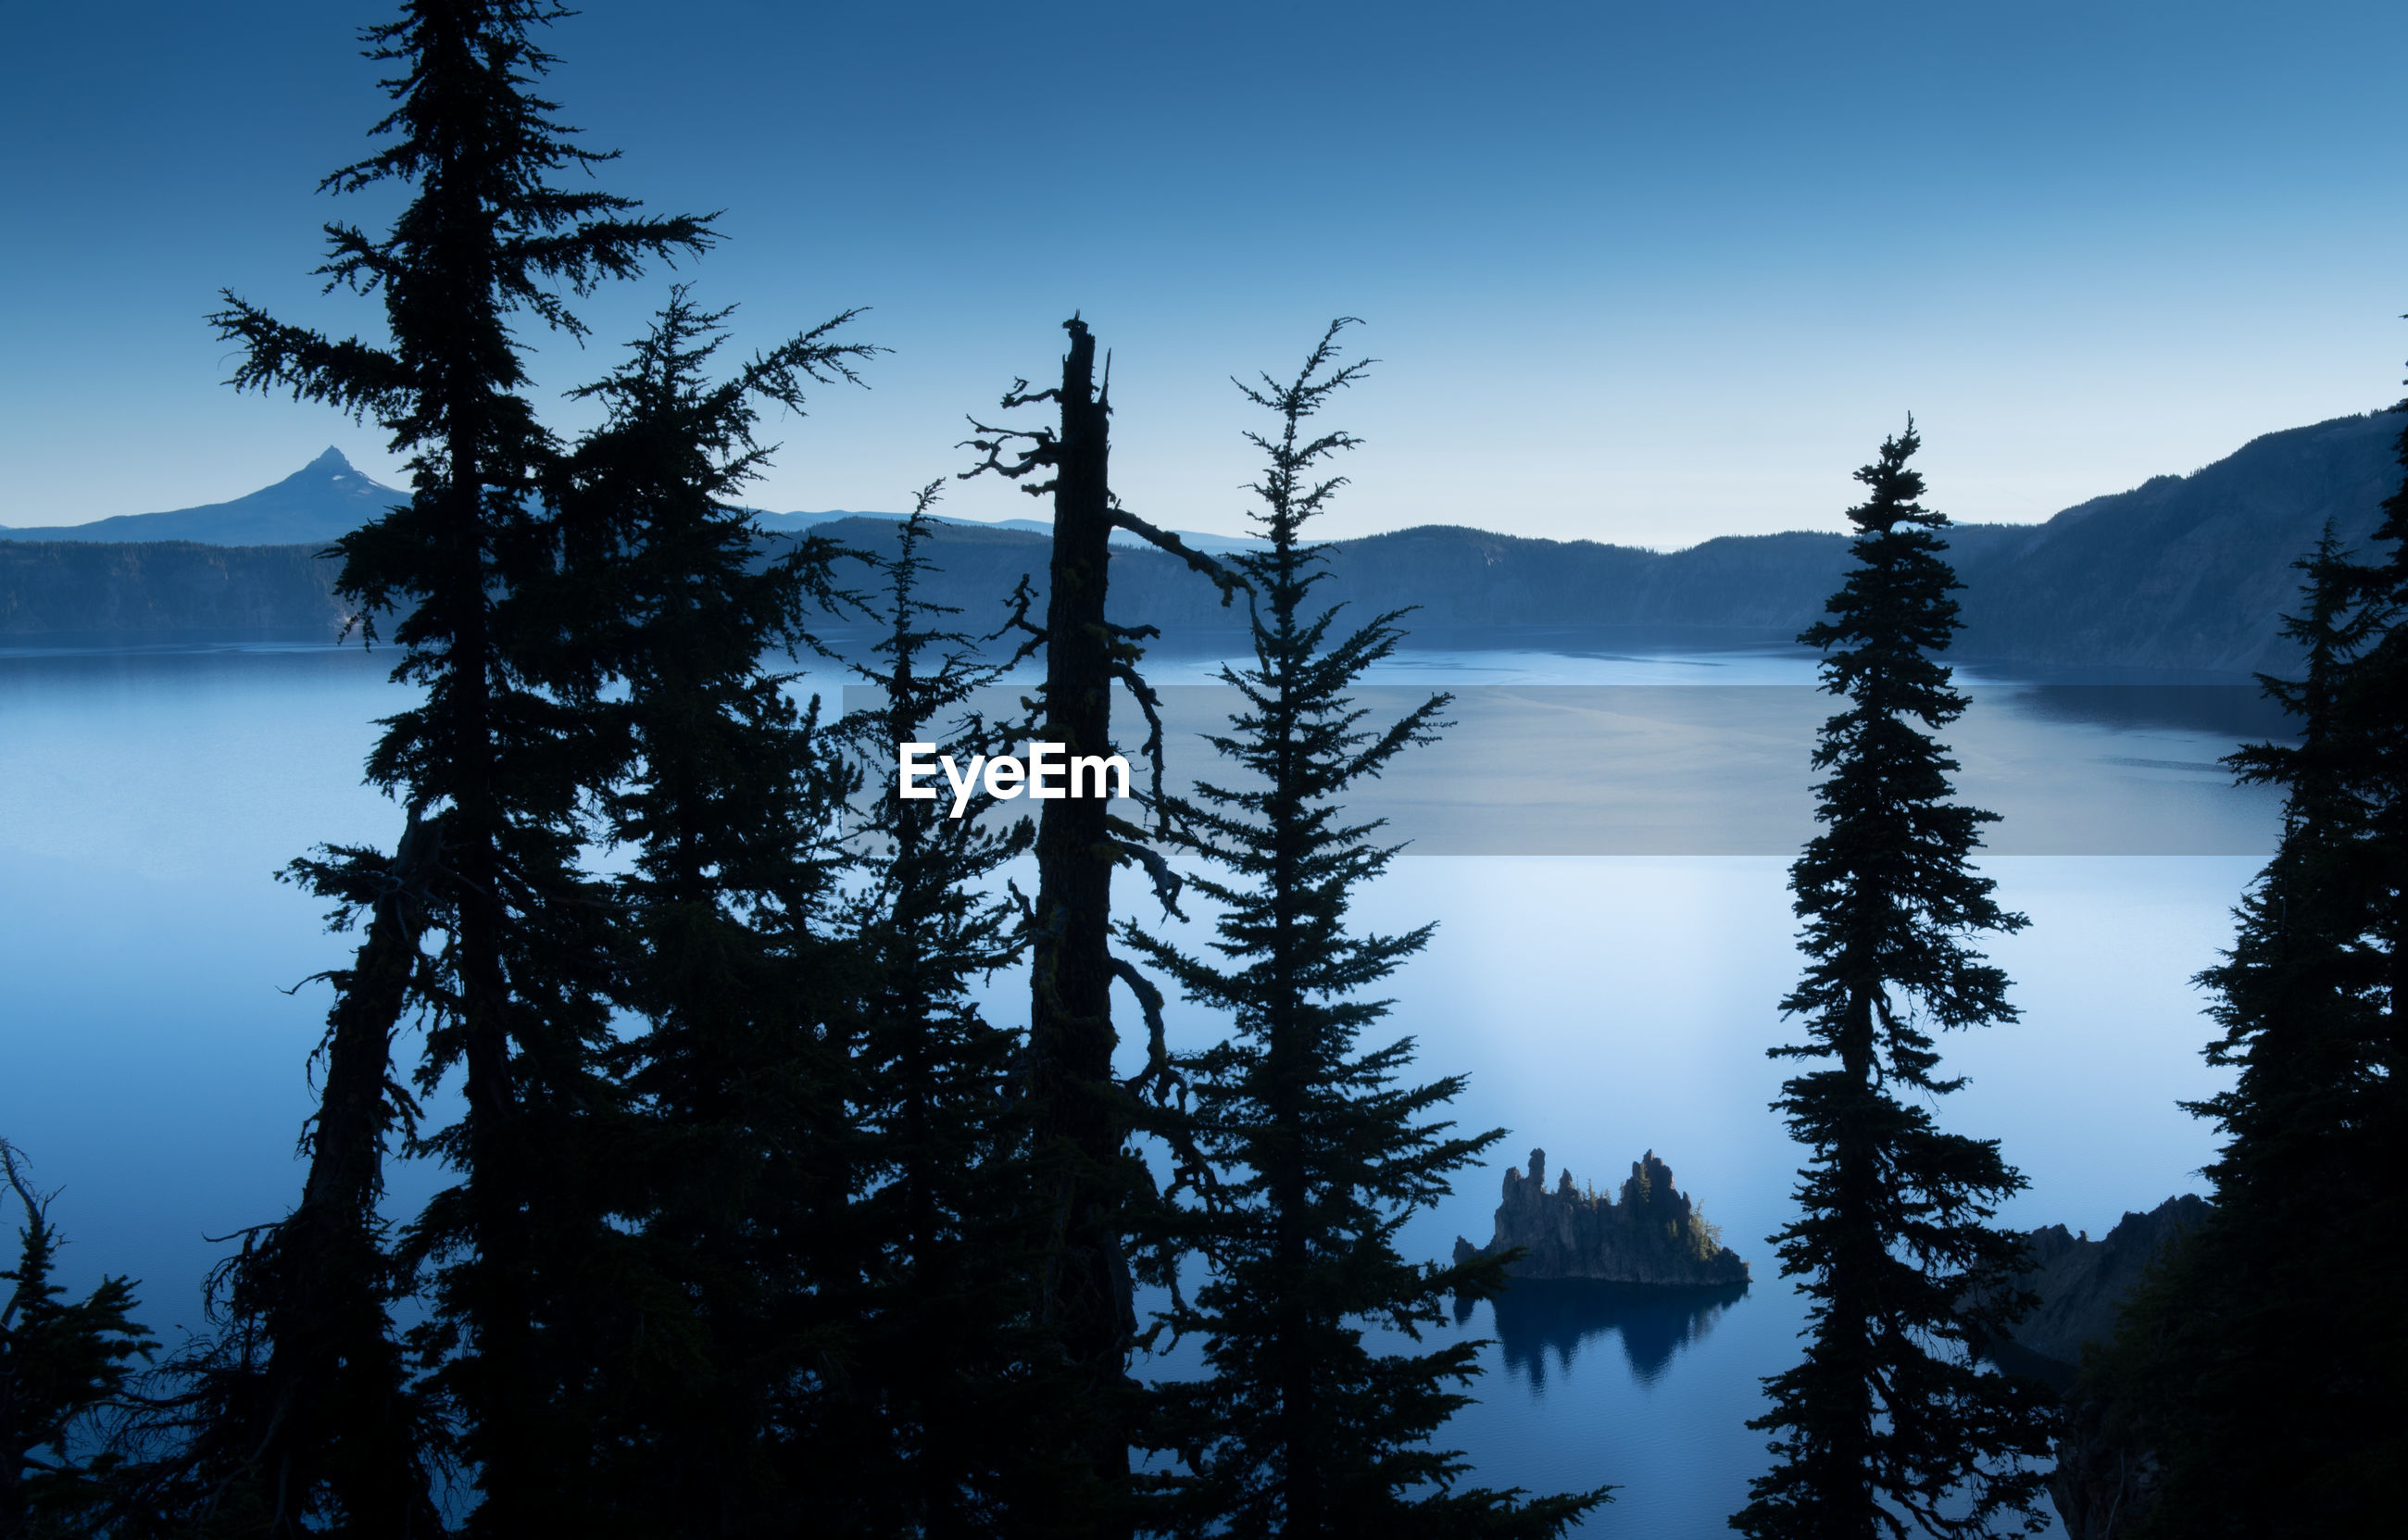 SCENIC VIEW OF PINE TREES BY LAKE AGAINST SKY